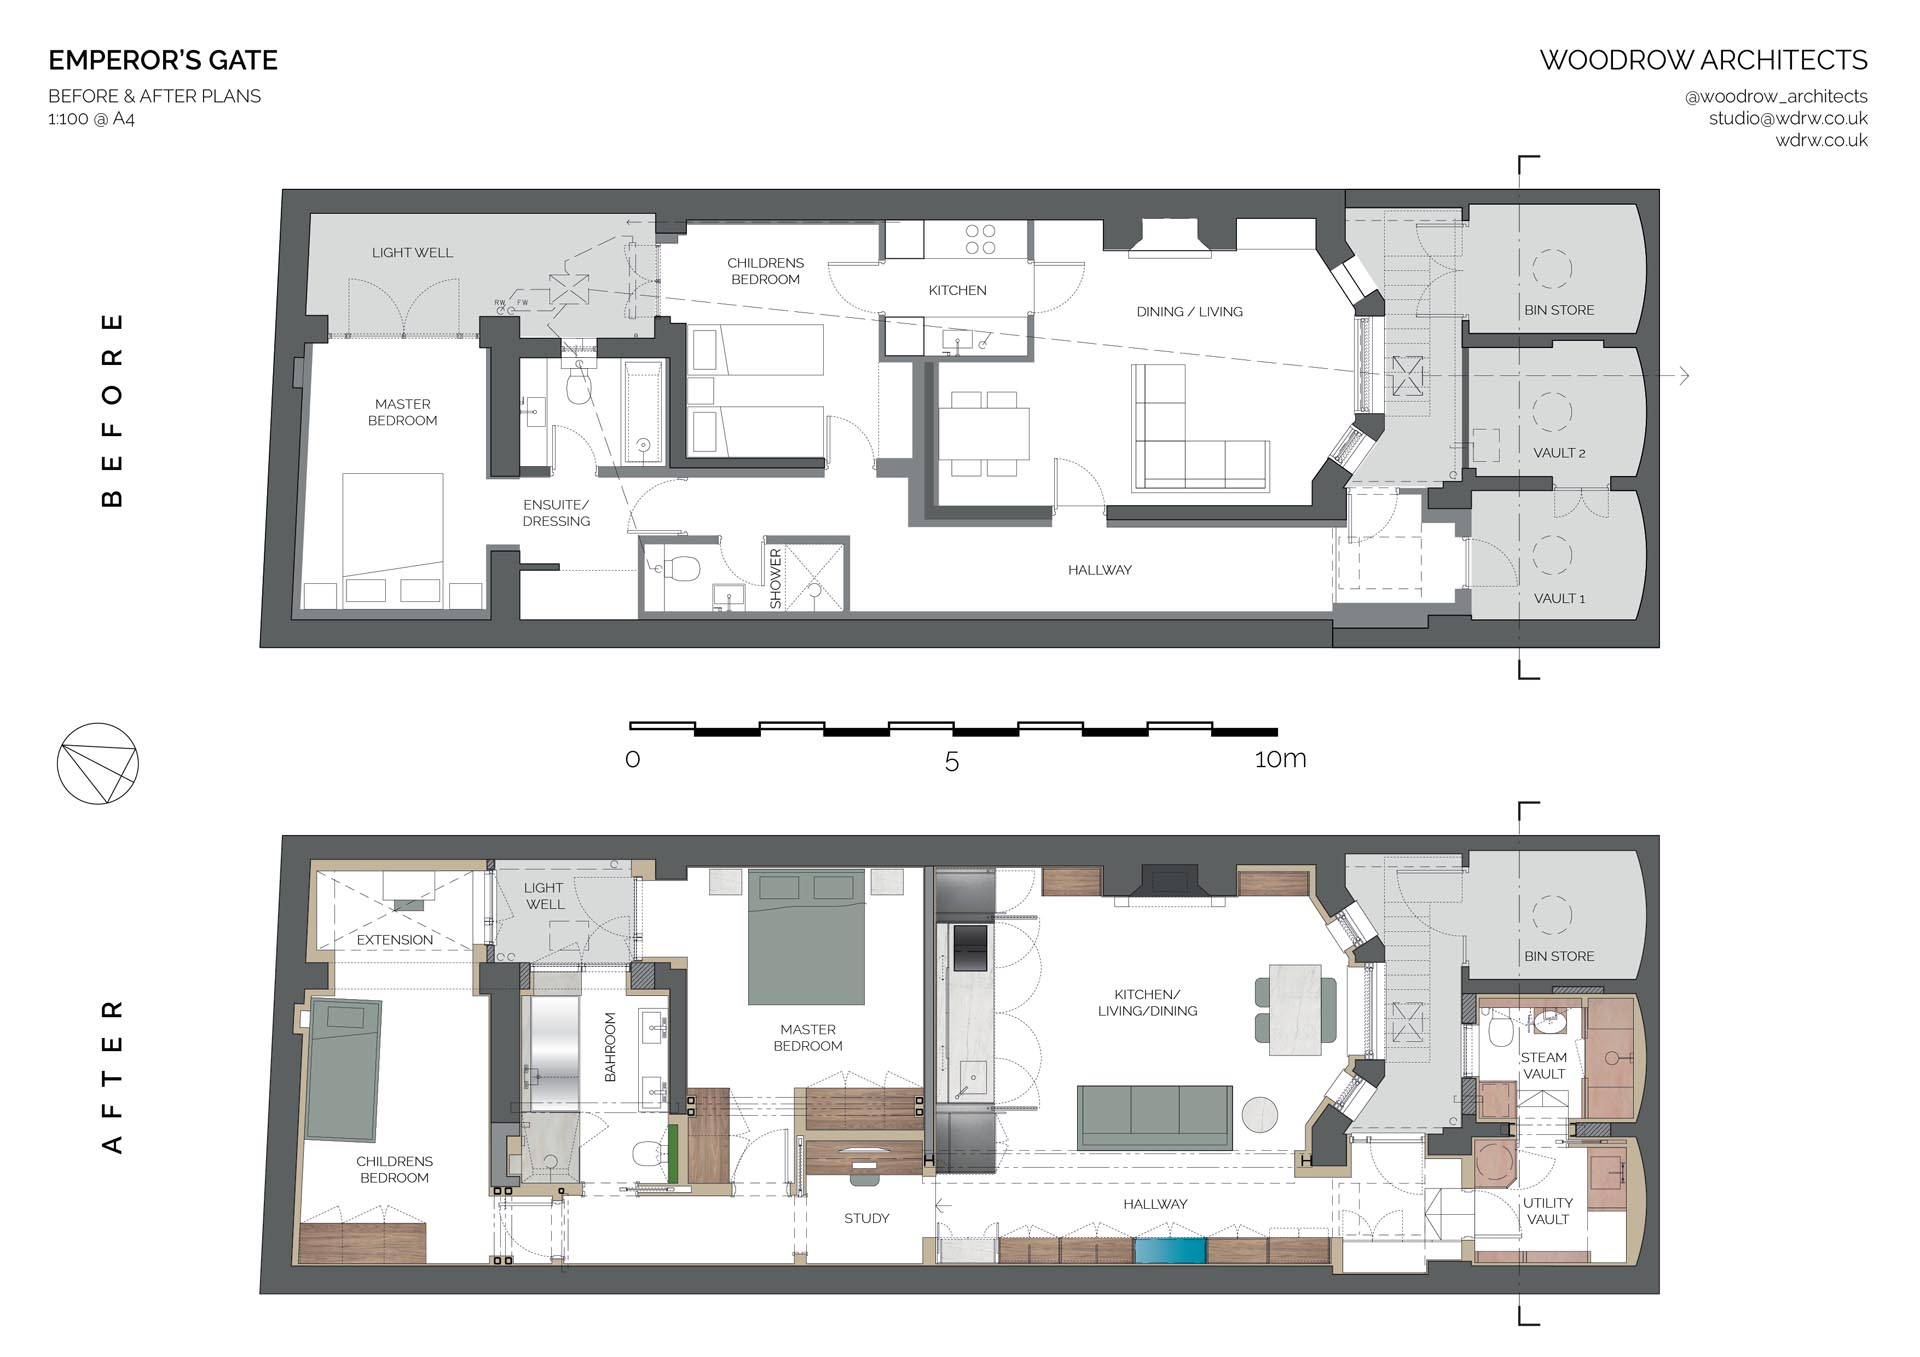 The before and after floor plan of an apartment remodel in London.